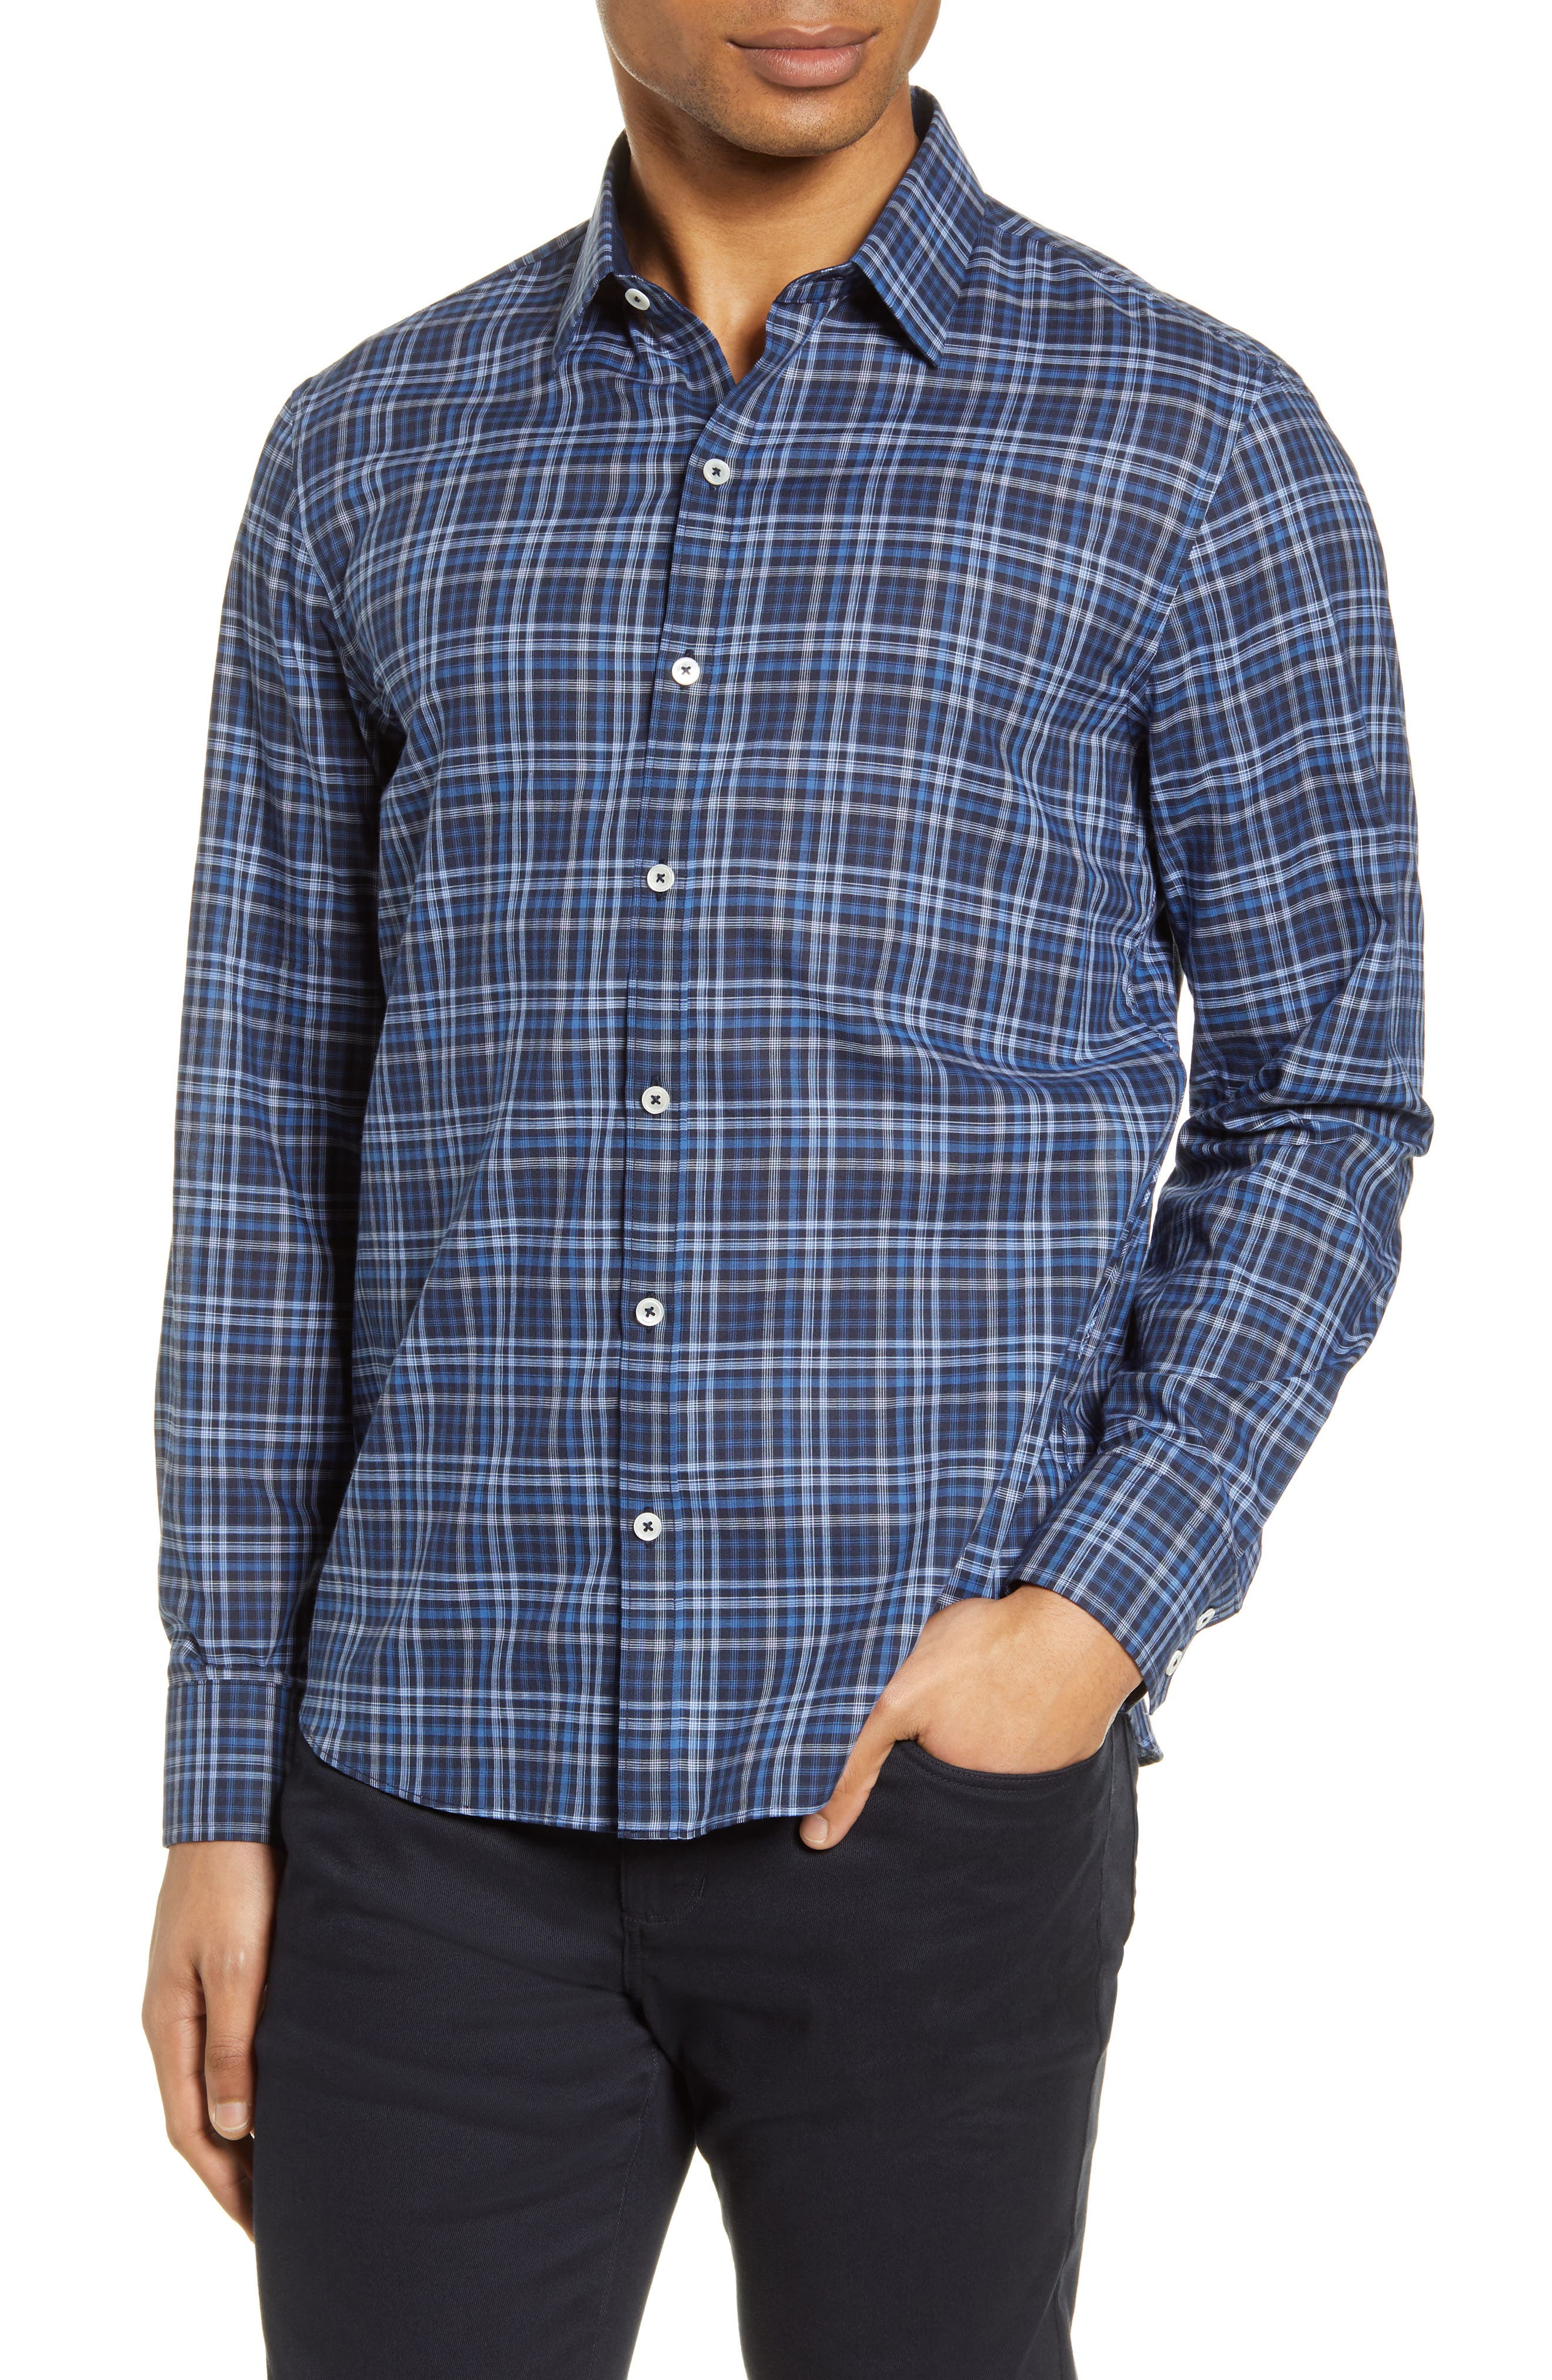 Image of Zachary Prell Plaid Button-Up Shirt